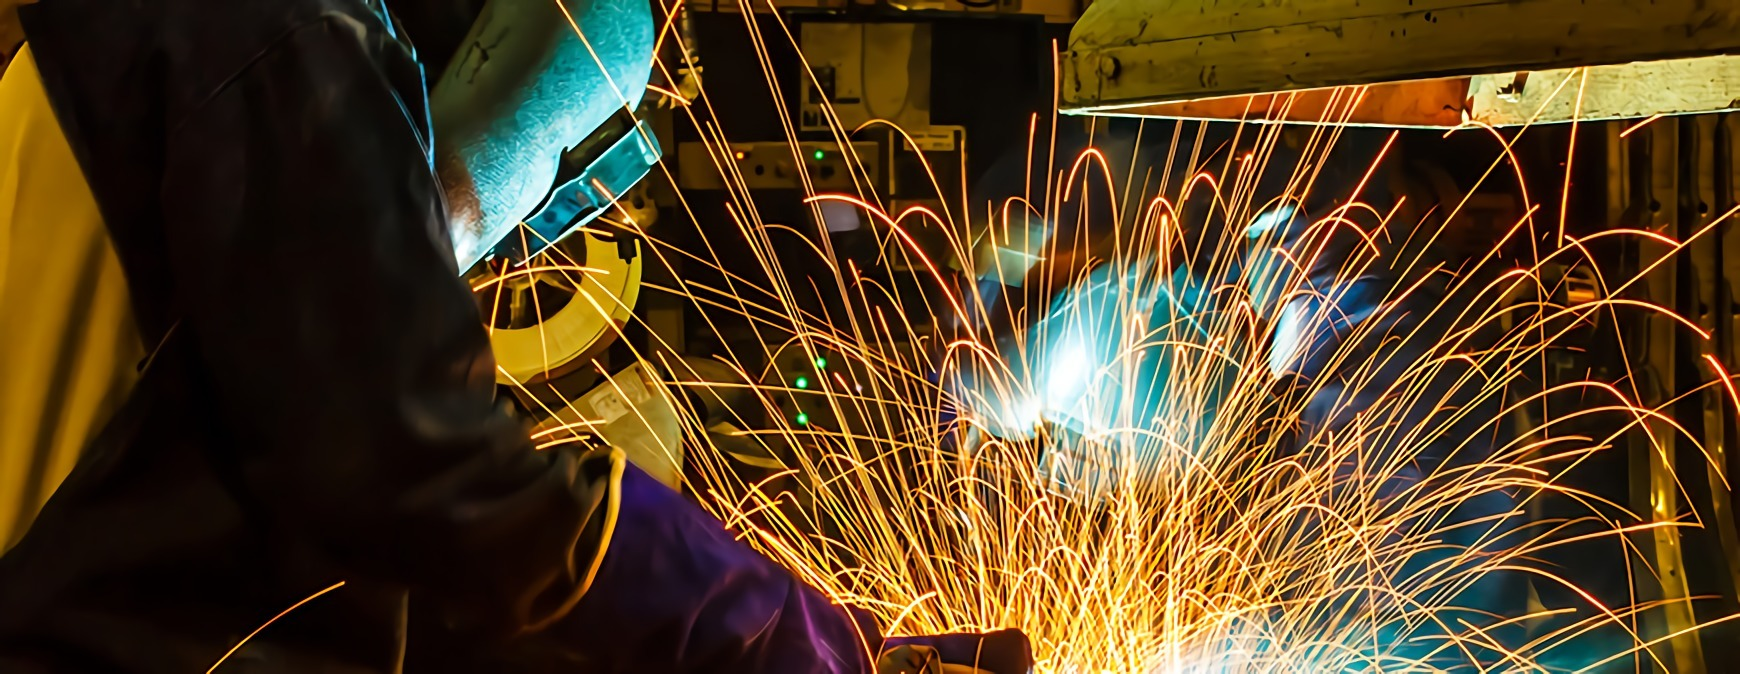 5 States with the Highest Employment Levels for Welders